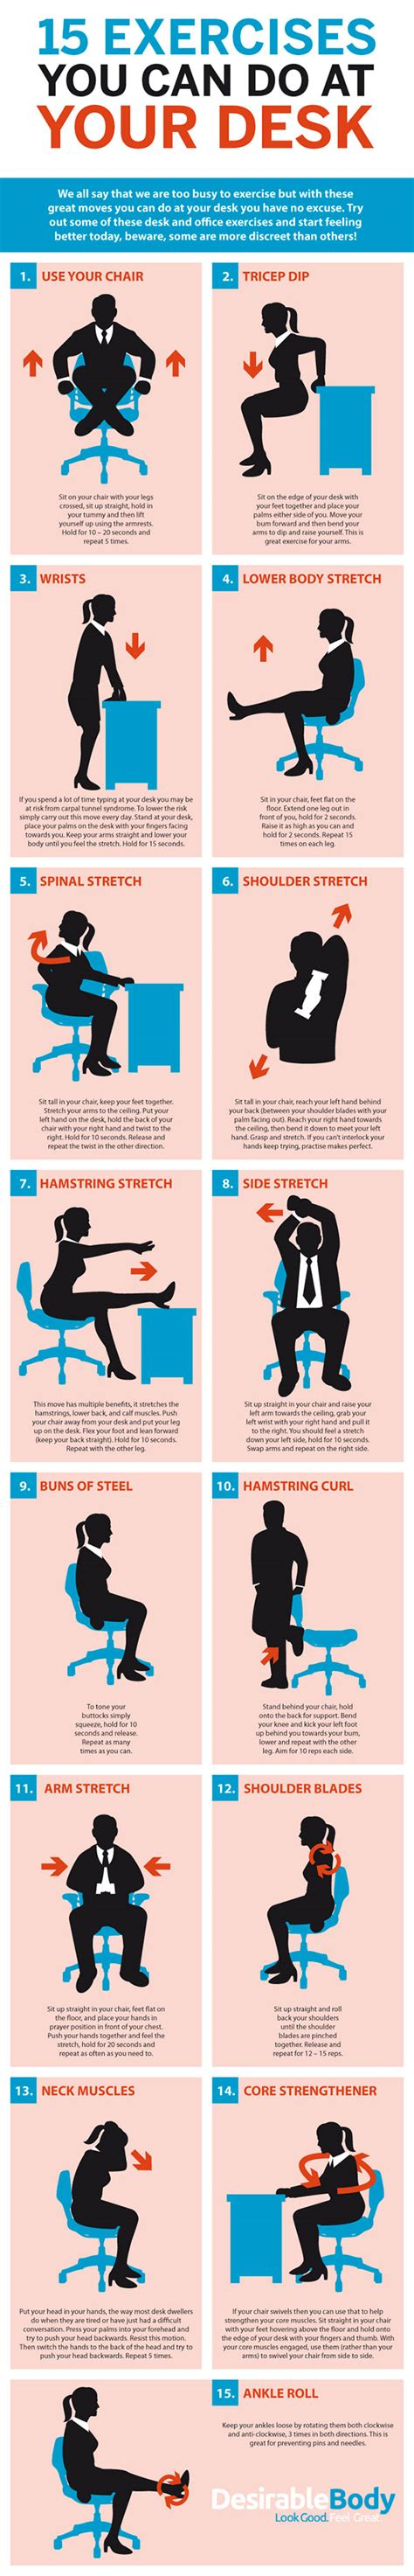 desk exercises at work 15 exercises you can do at your desk build healthy